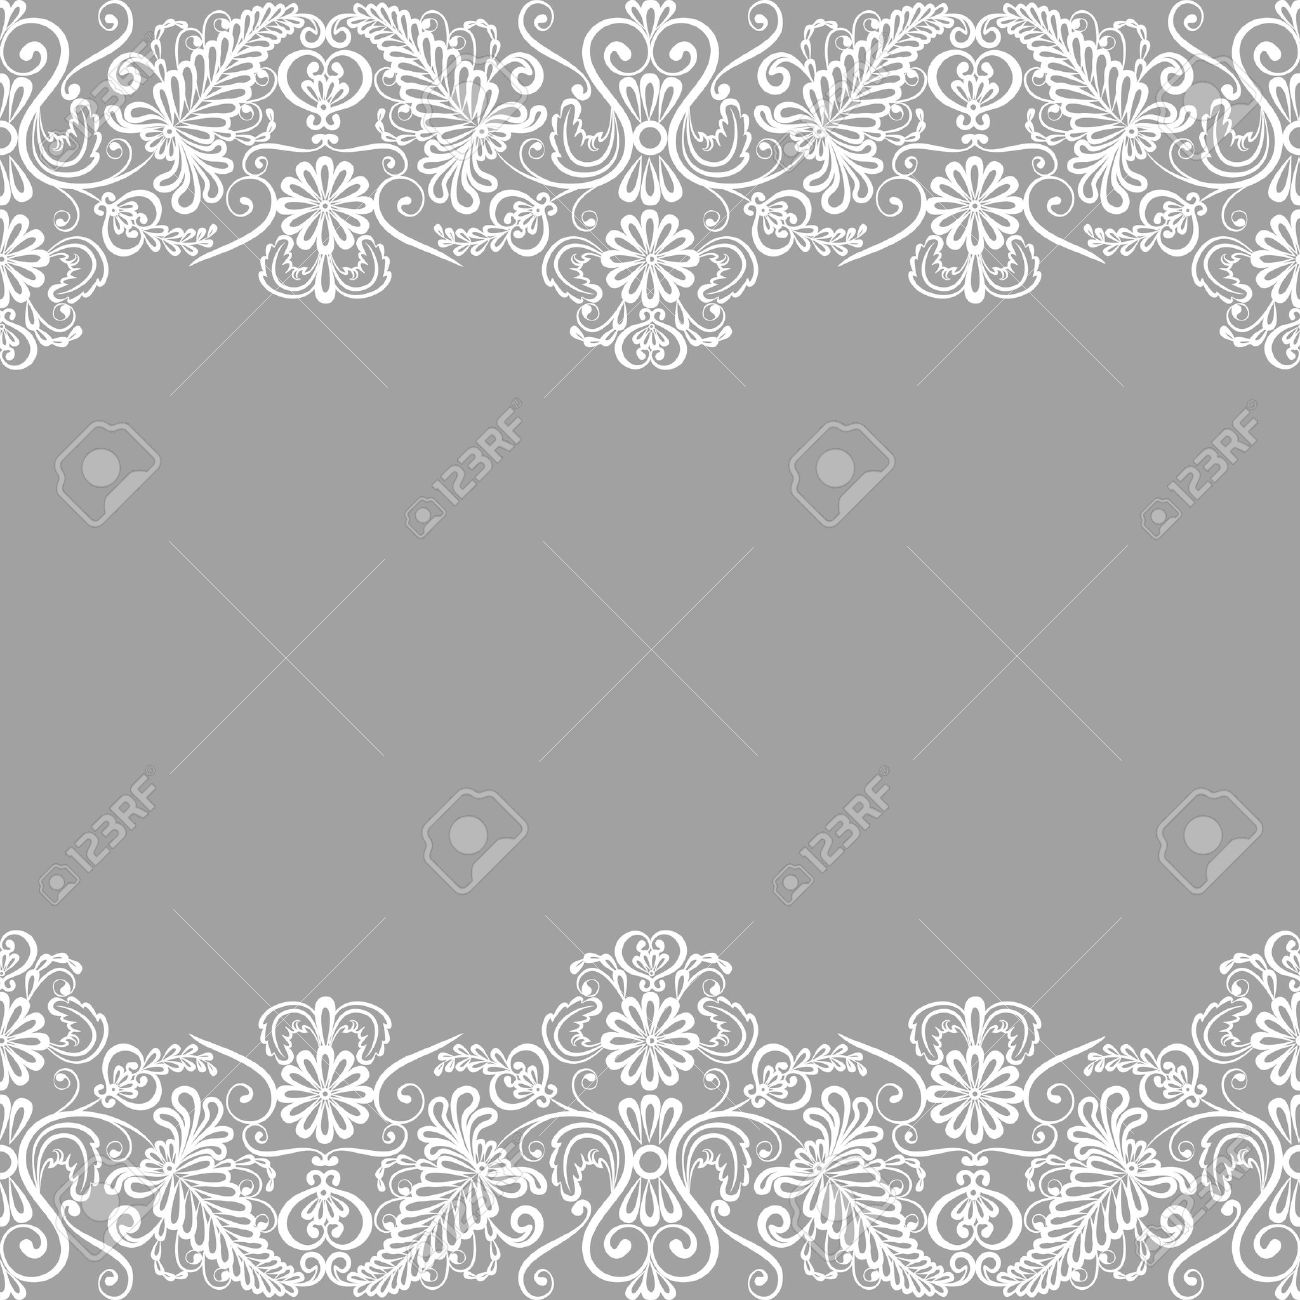 wedding invitation or greeting card with lace border royalty free